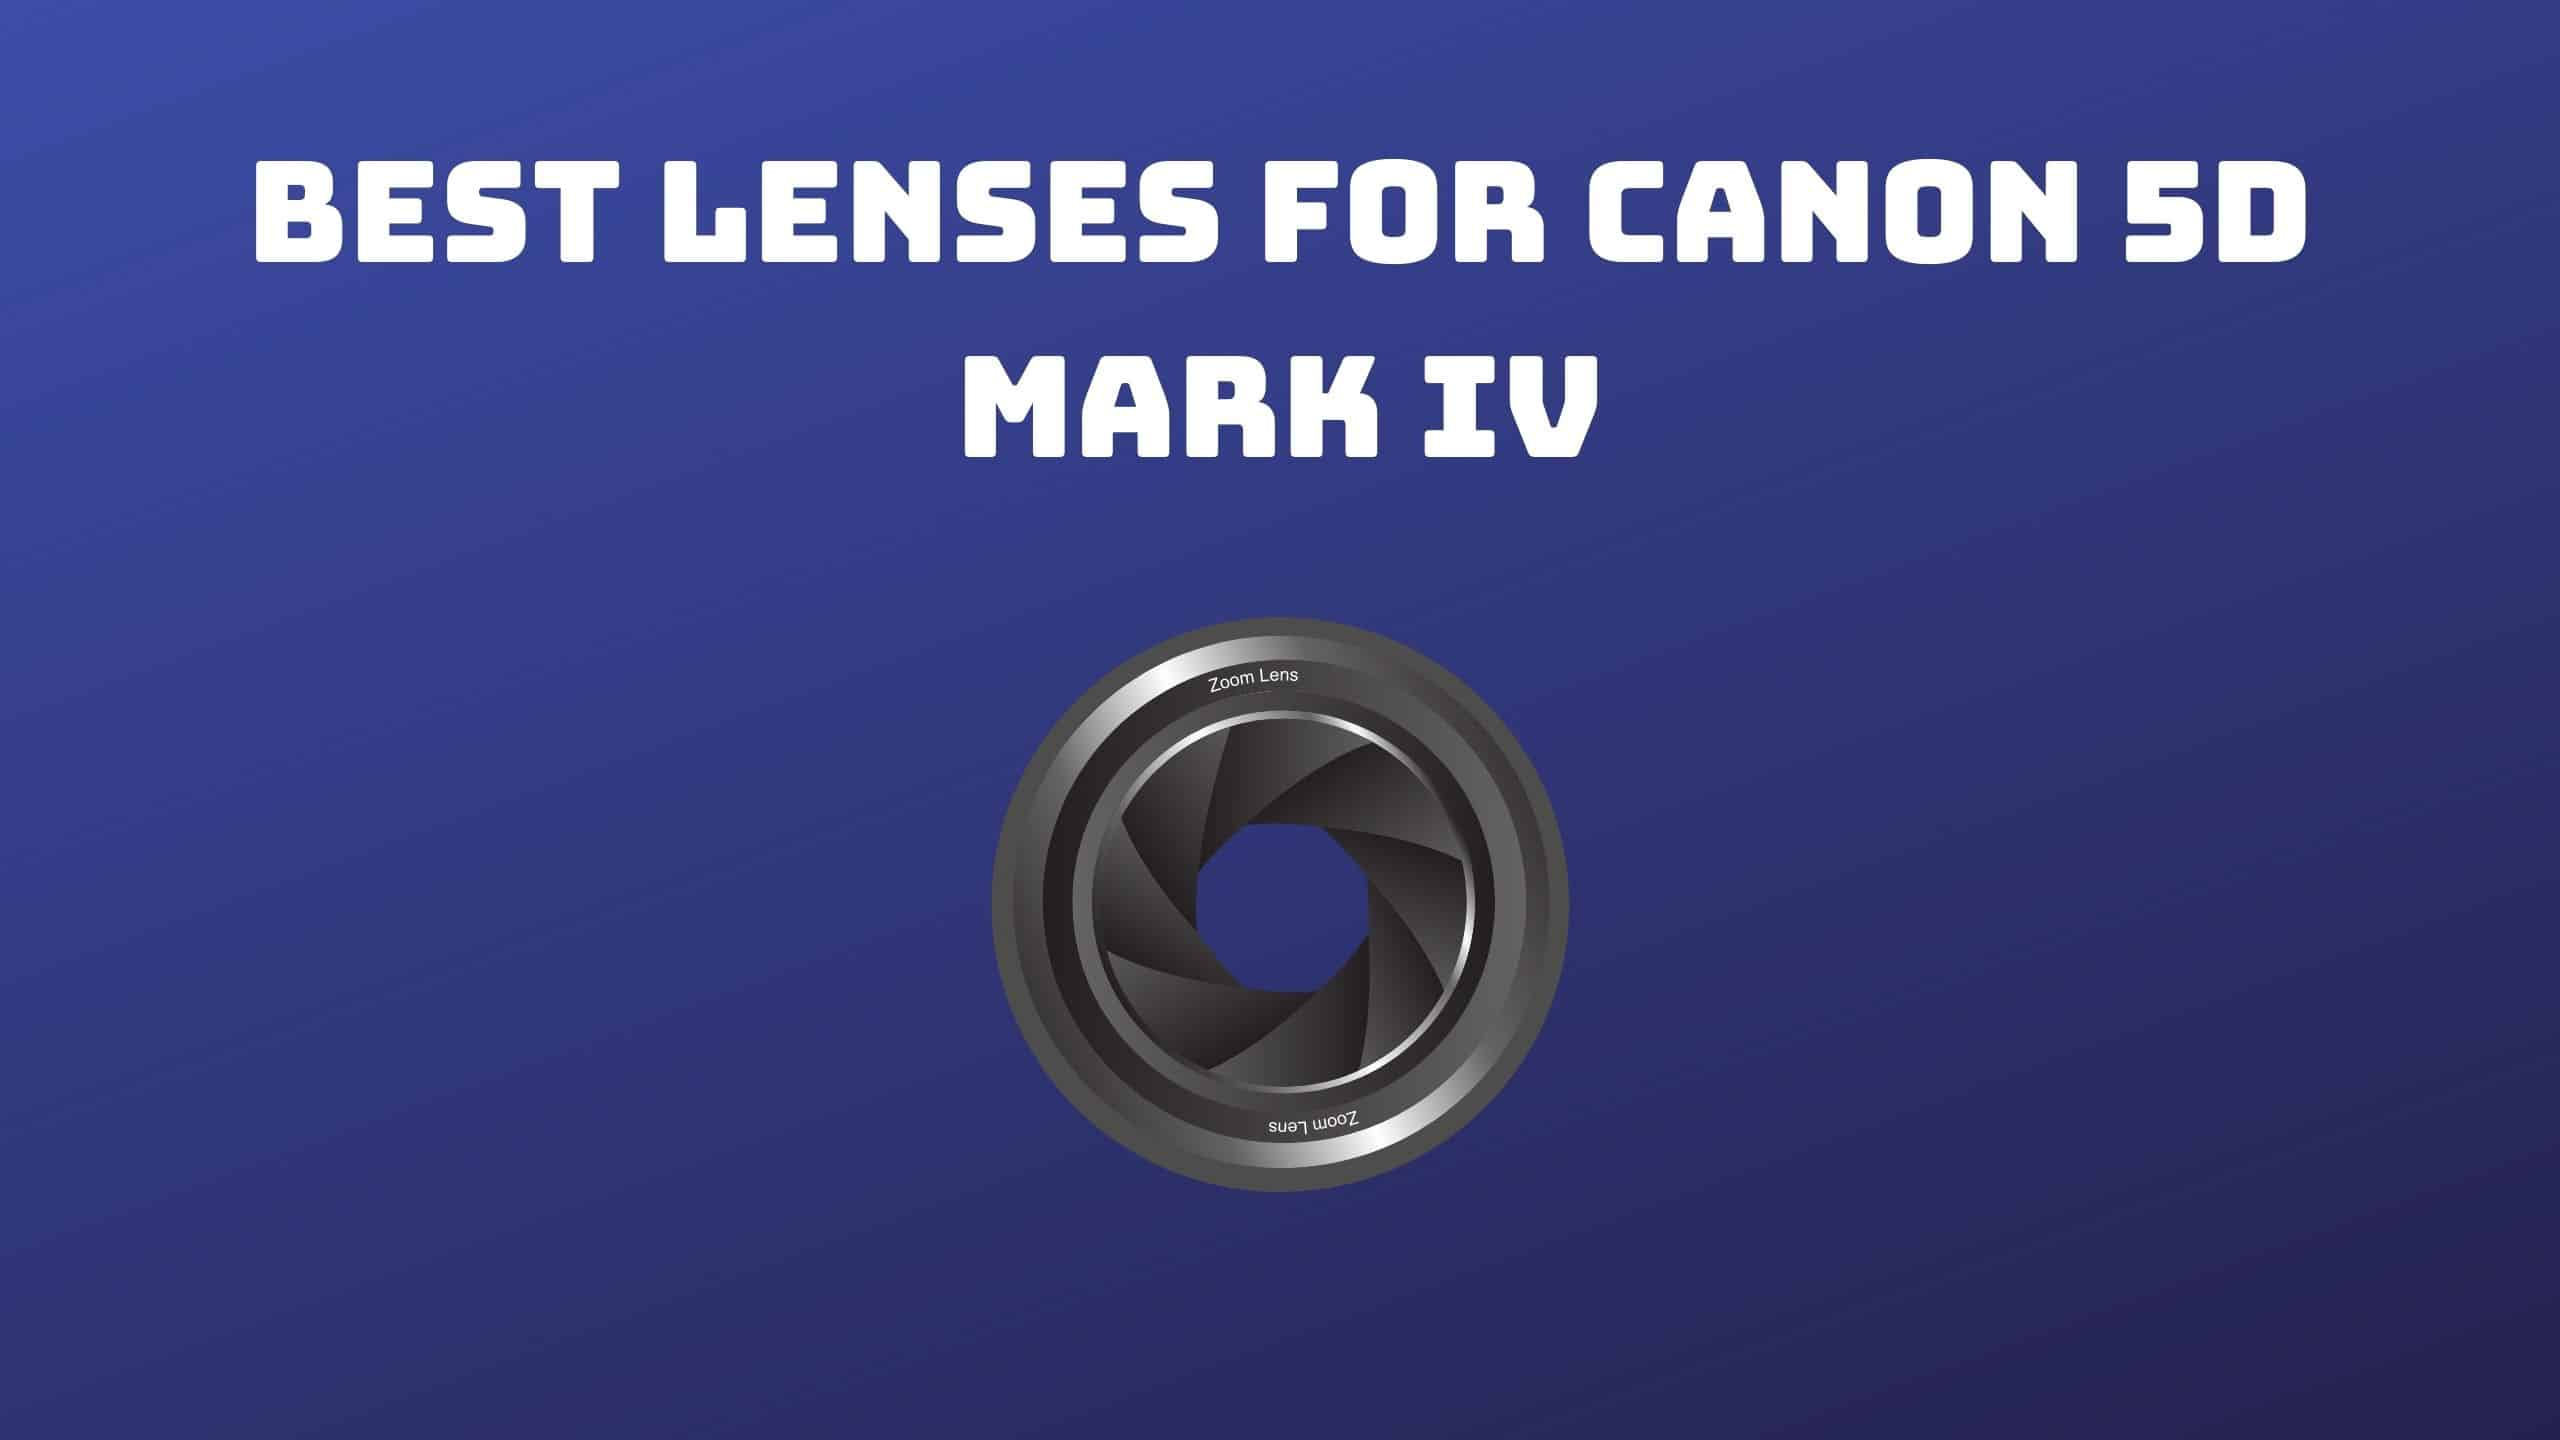 Best Lenses for Canon 5D Mark IV